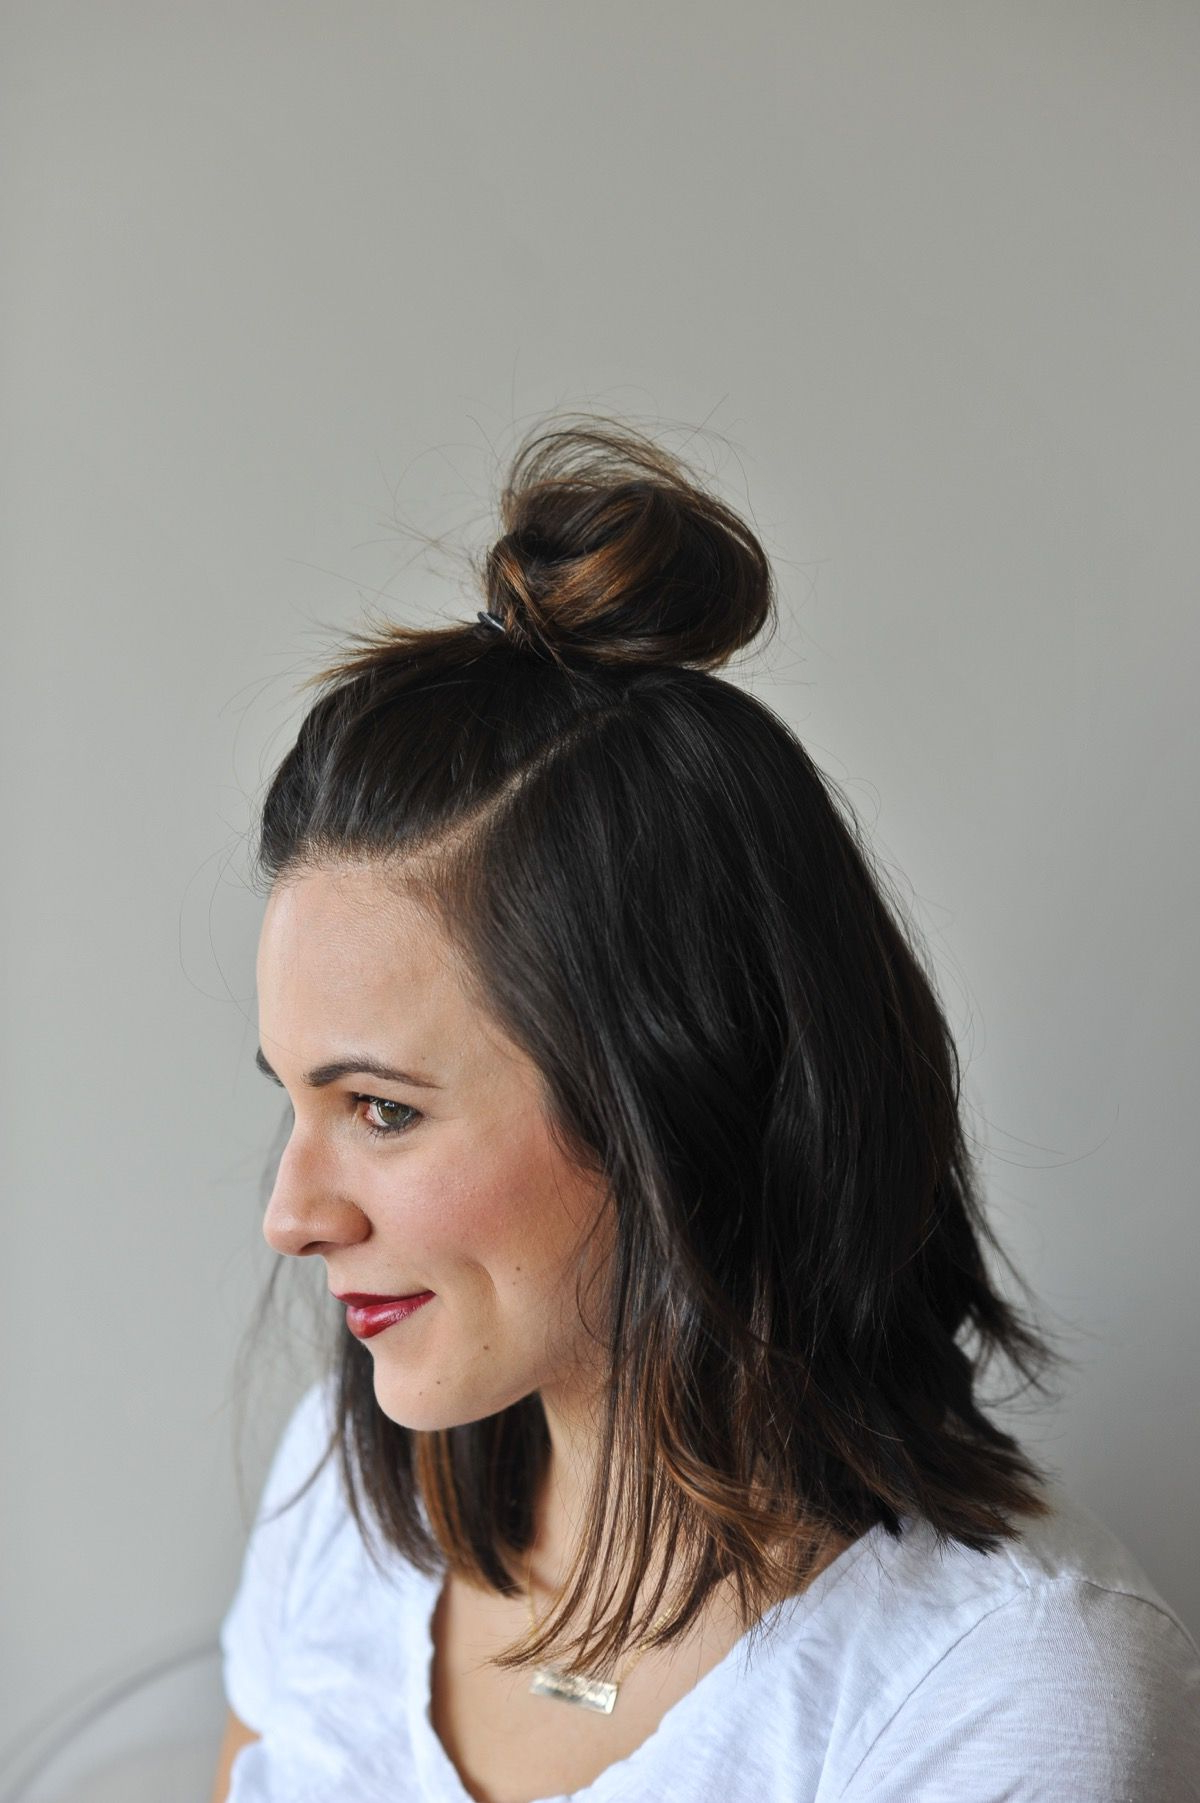 How To Do A Half Top Knot With Short Hair | Hair | Pinterest | Short With Half Long Half Short Haircuts (View 4 of 25)